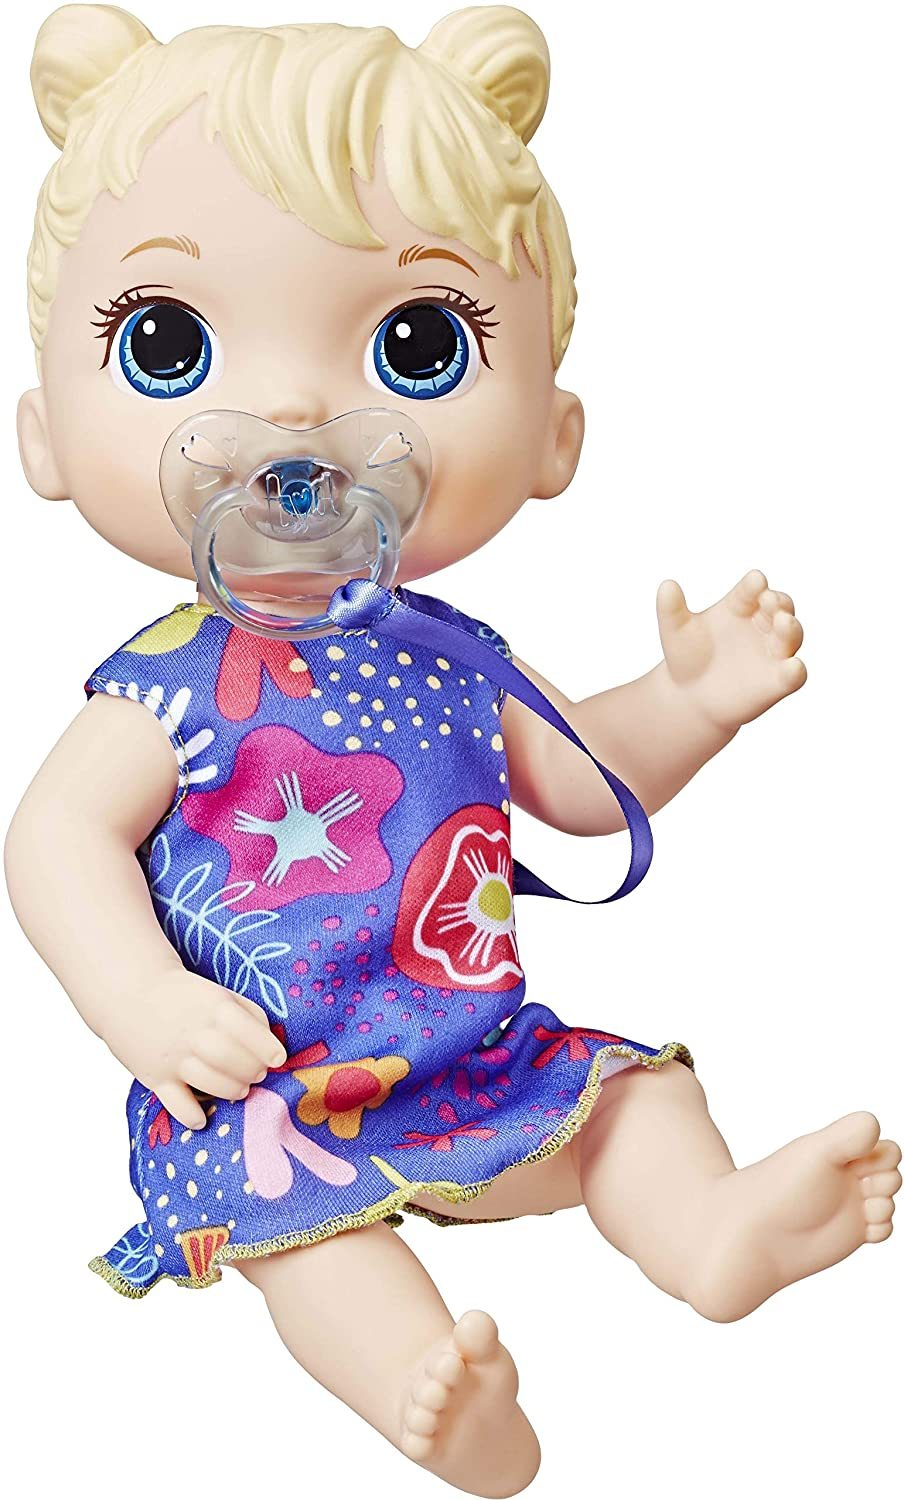 Primary image for Baby Alive Baby Lil Sounds: Interactive Blonde Hair Baby Doll